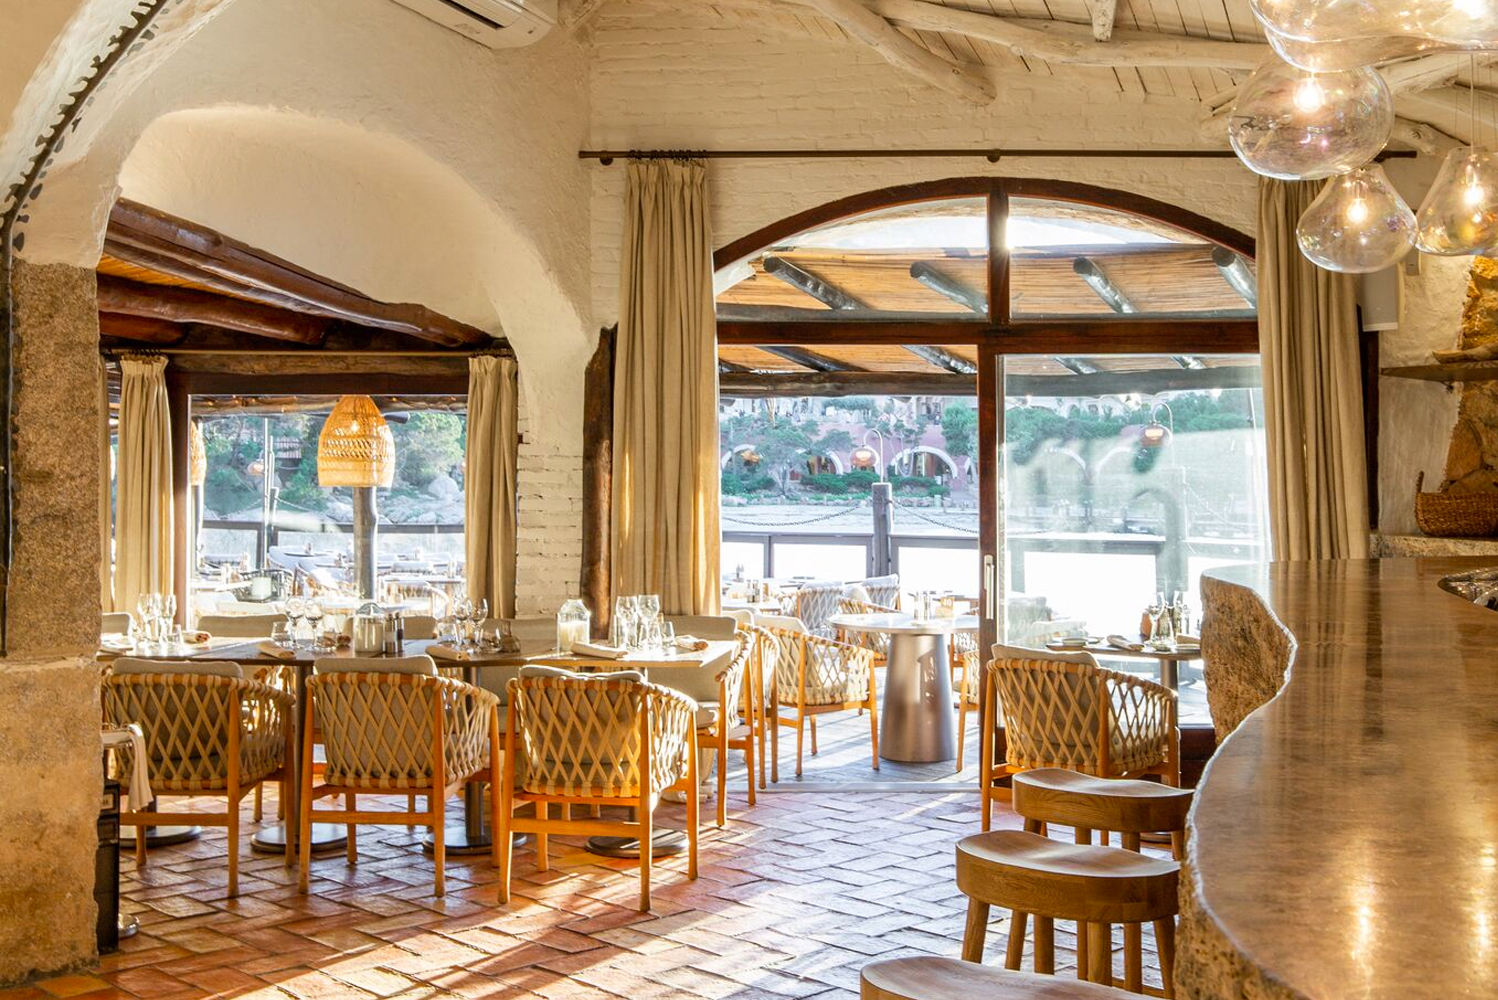 Set within the Sardinian Hotel Cervo, the restaurant is the first of five spaces to be redesigned by Blacksheep.